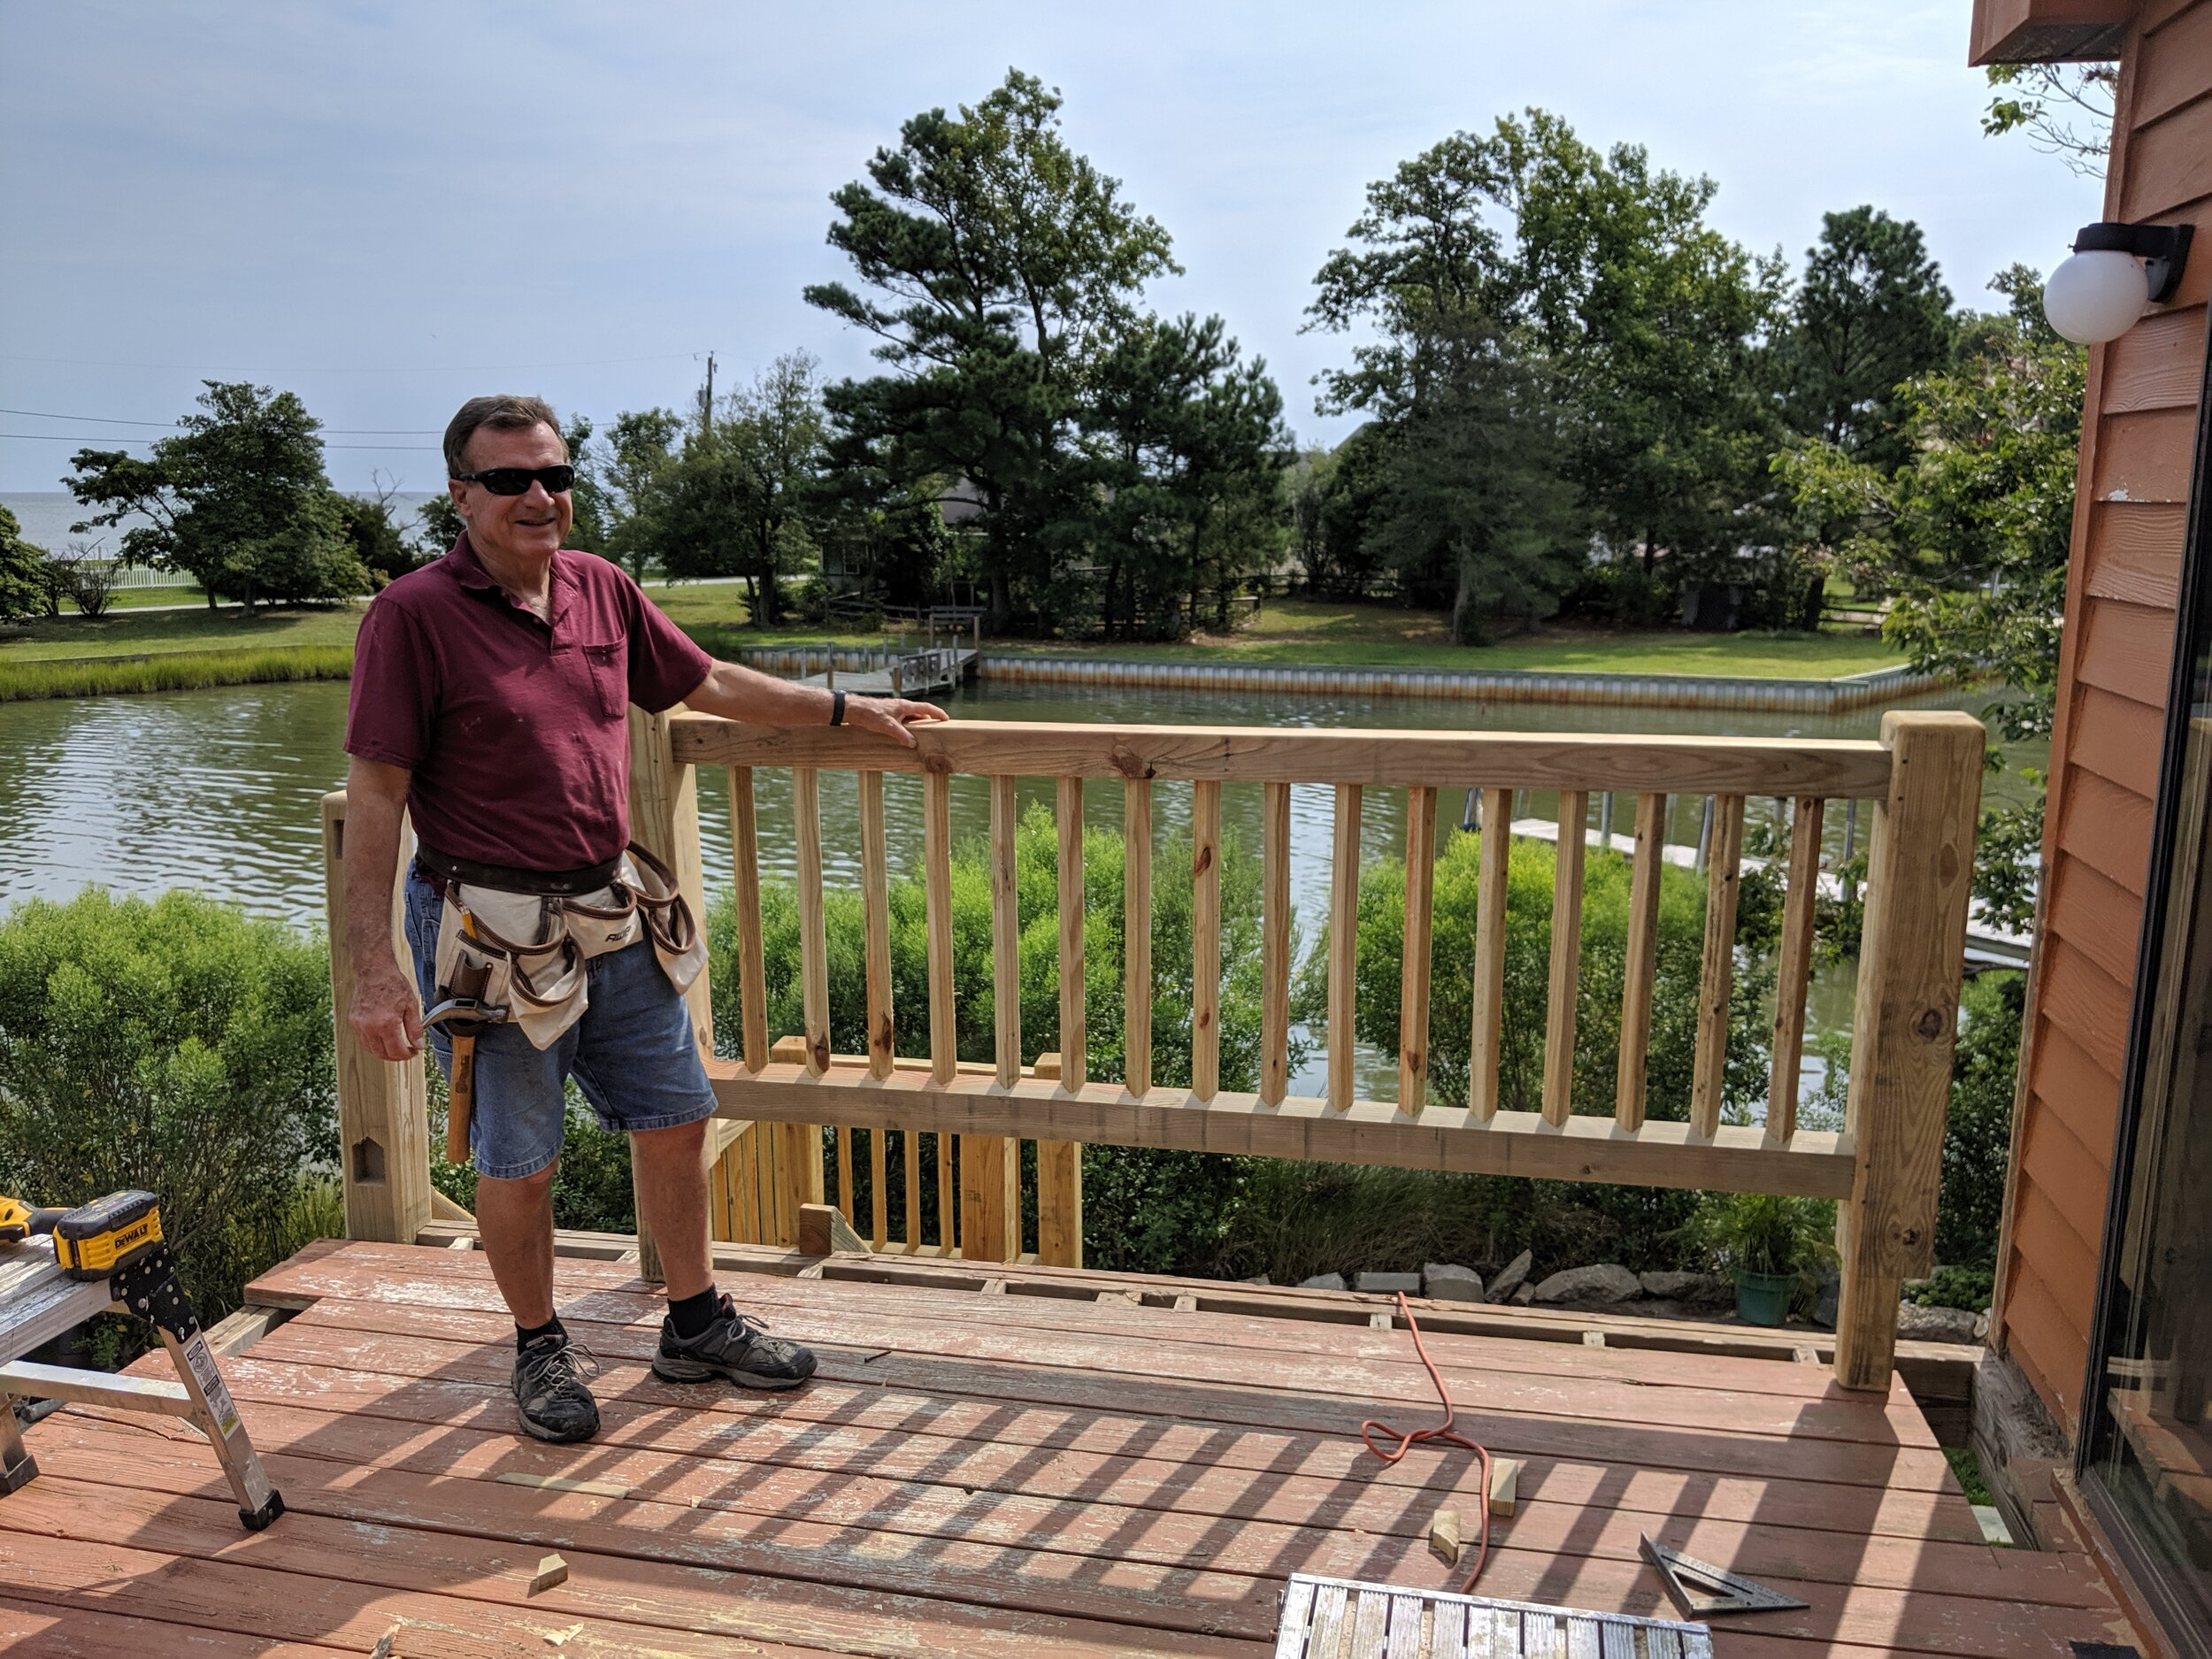 """rick holding an """"upgraded"""" version of our railing system featuring rotated pickets mortising into the top and bottom rails. The entire railing section interlocks into corresponding sockets, called mortises. (see post on left side of image) the entire assembly is then installed into place."""